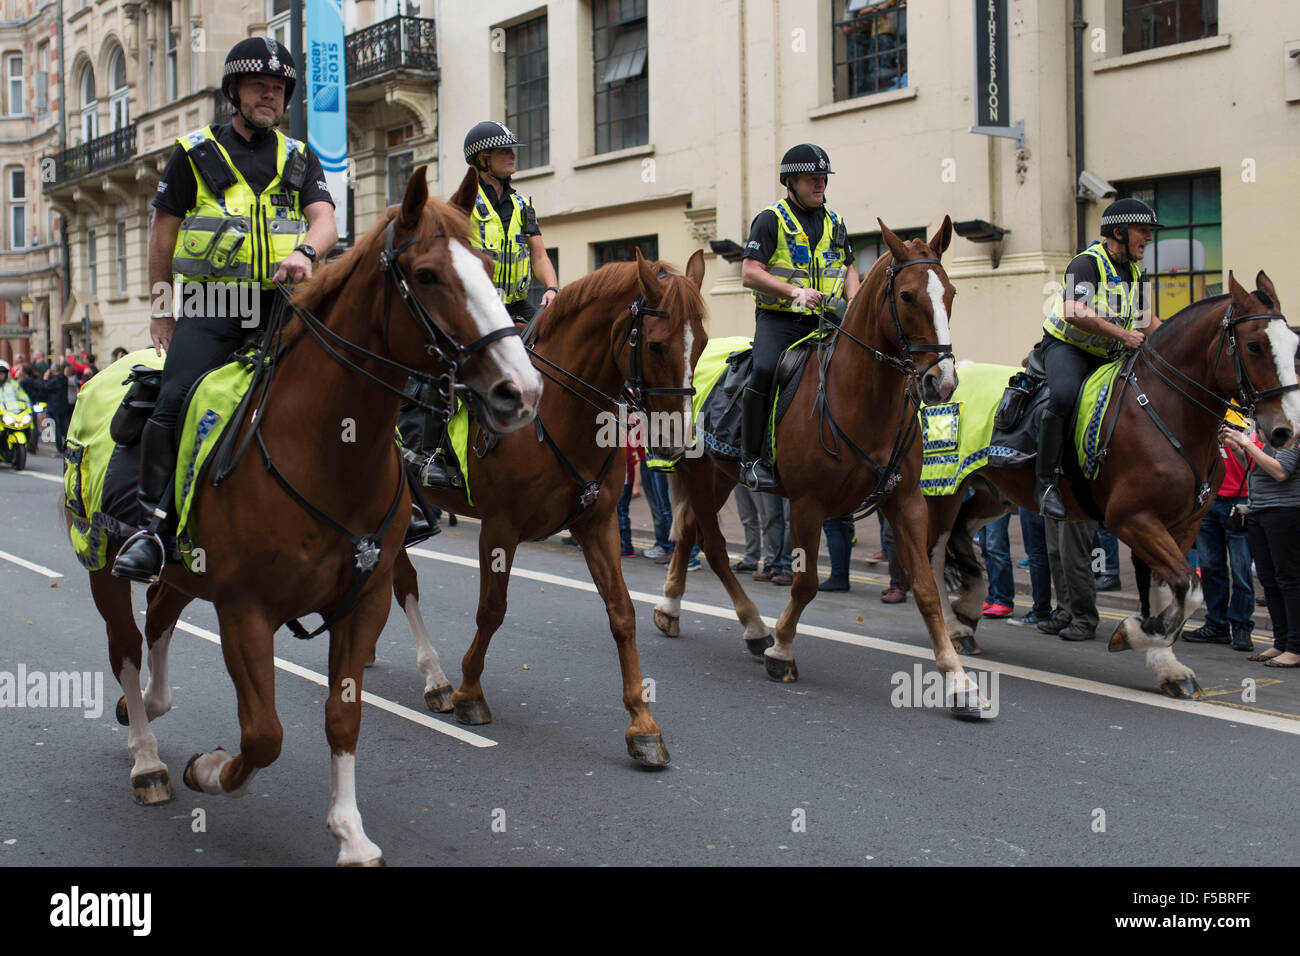 Mounted police officers riding horses during a Wales rugby game. - Stock Image